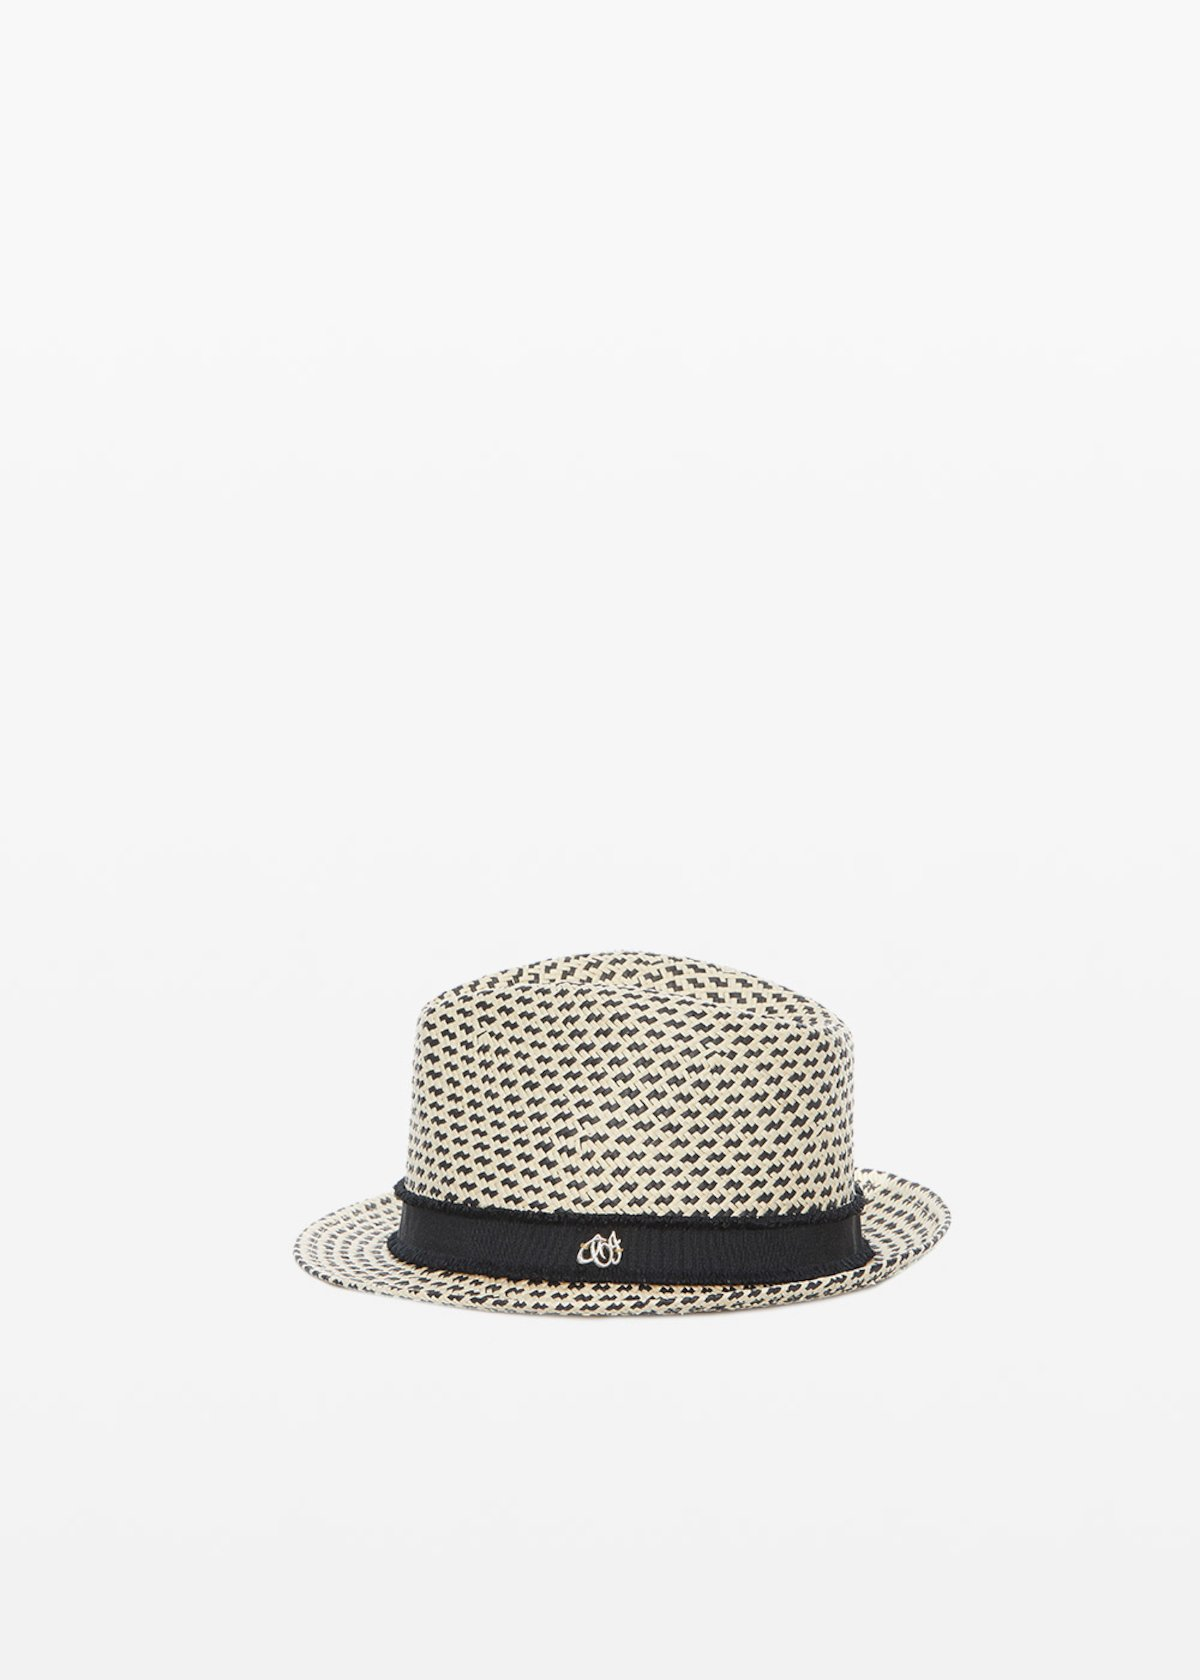 Charly straw hat with grosgrain detail